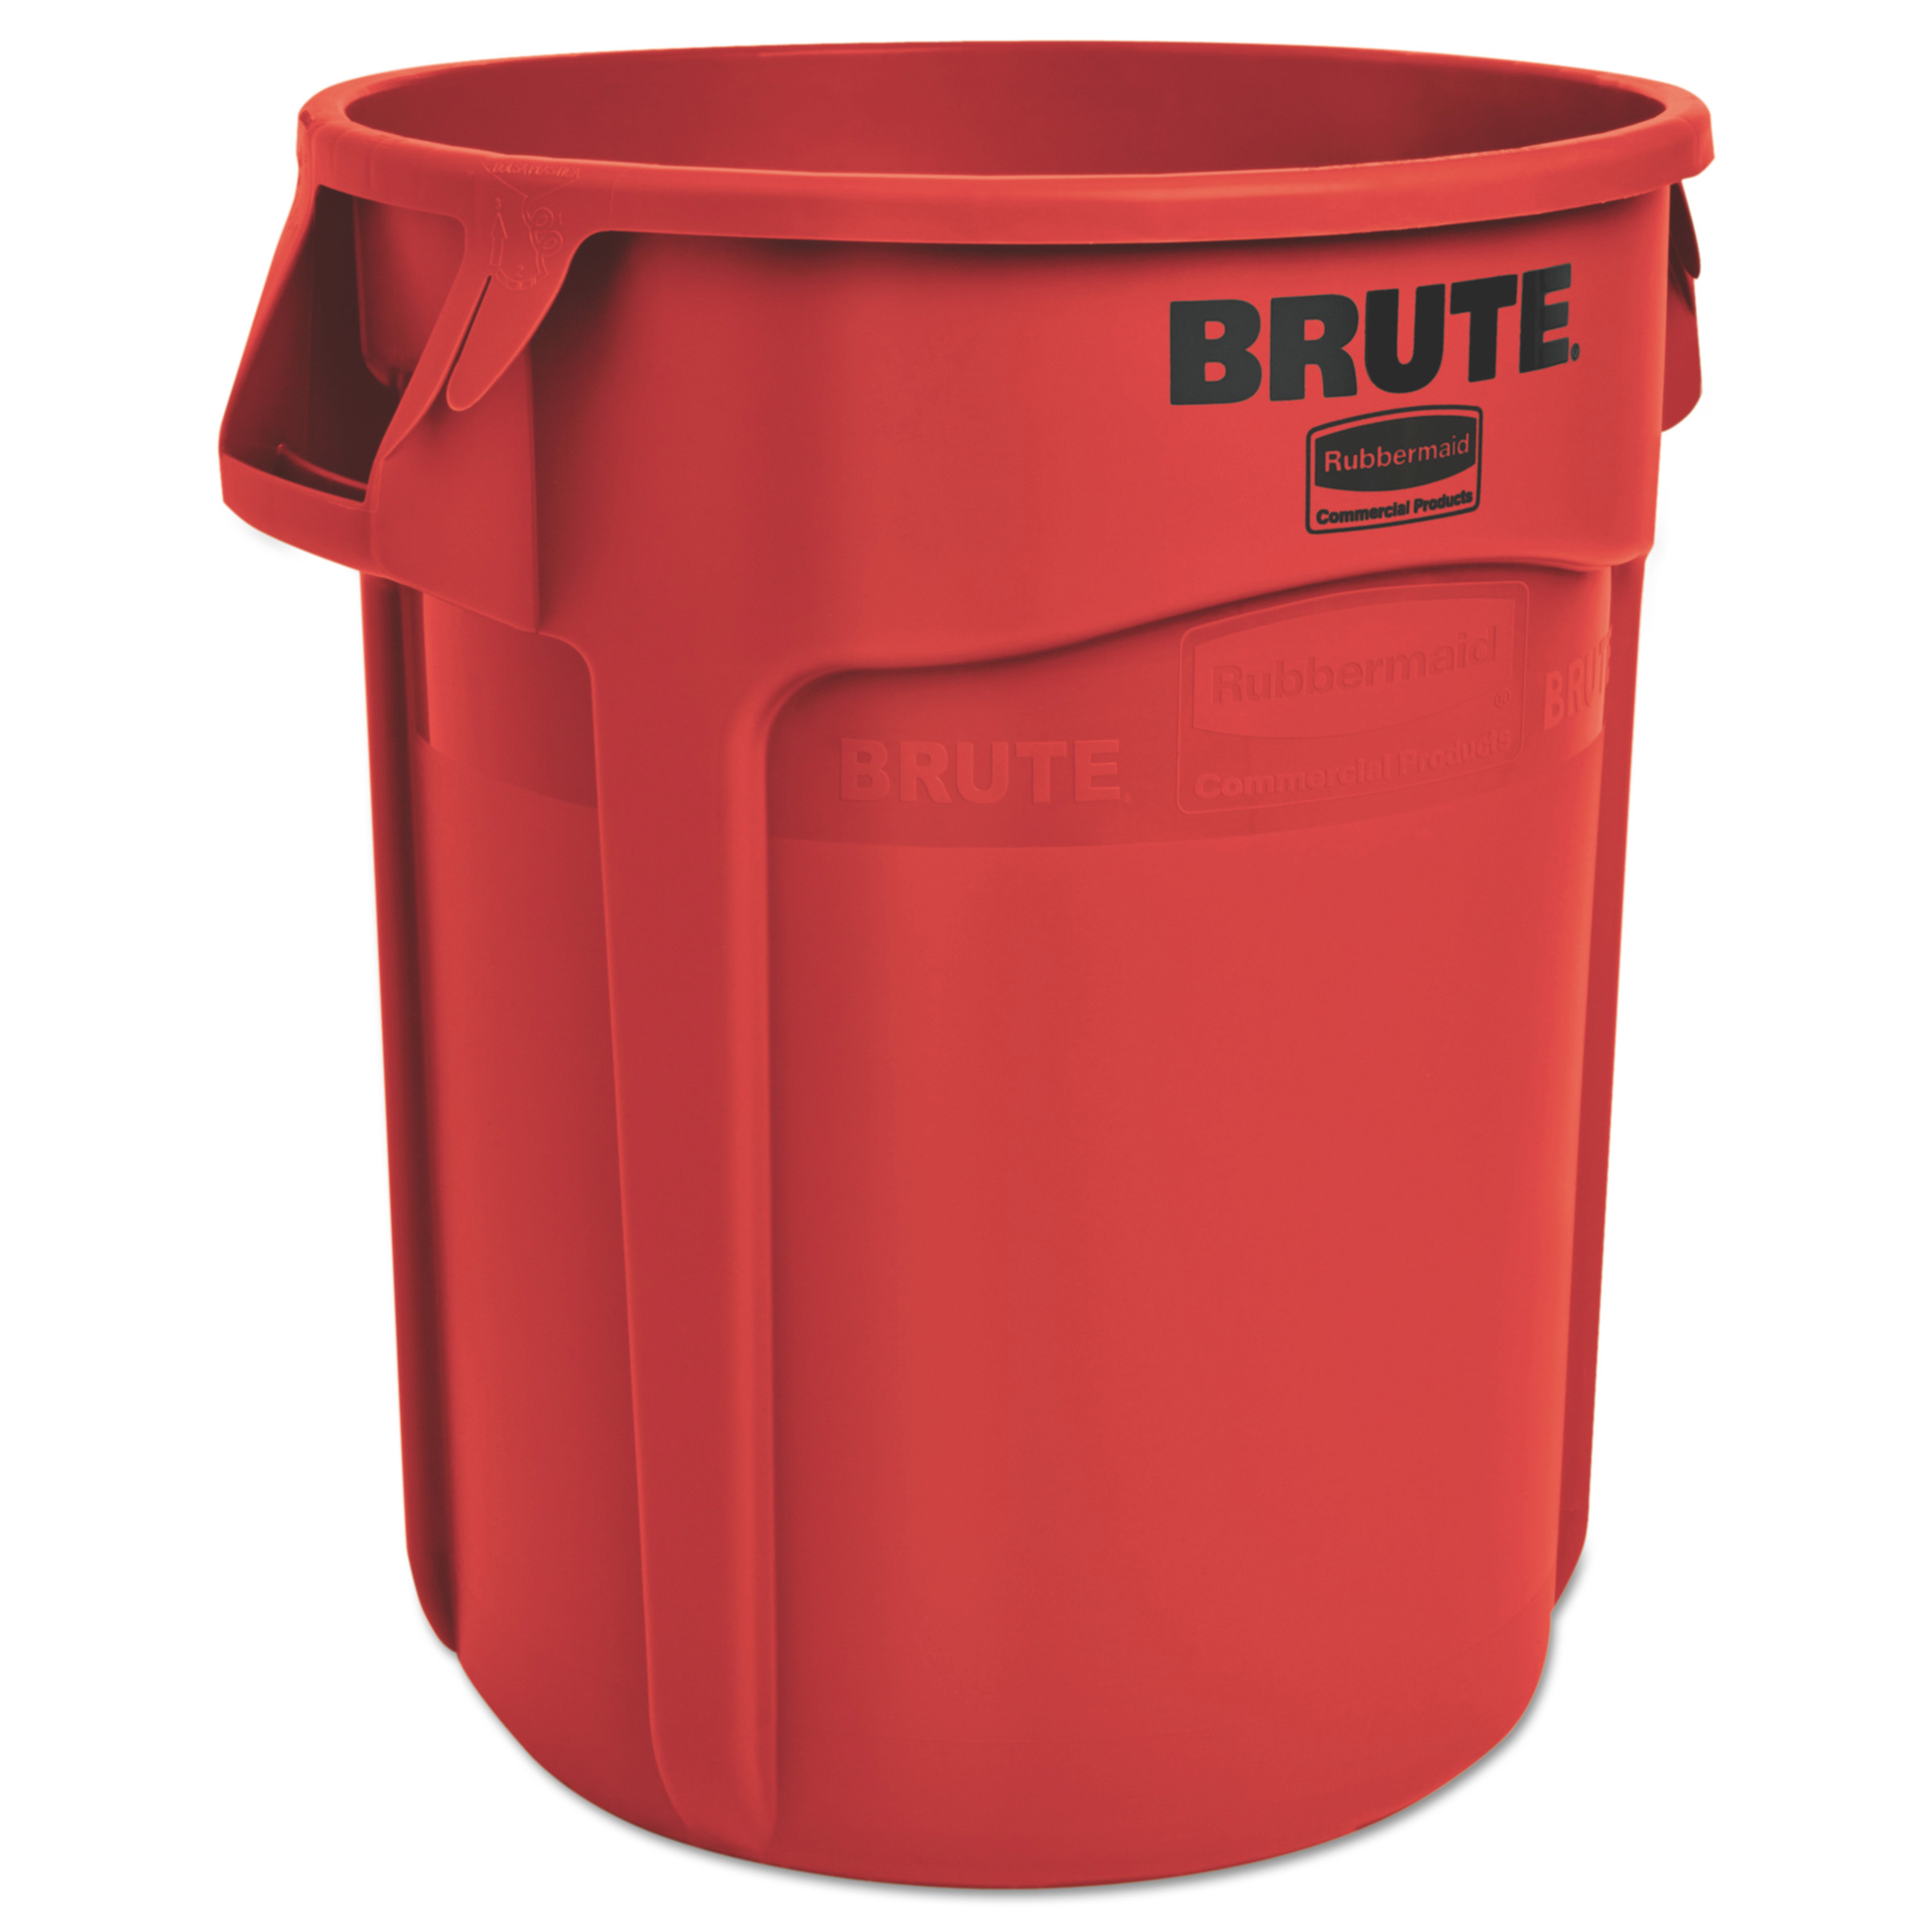 Rubbermaid Commercial Red Plastic 20 Gallon Round Brute Containers, 6 count